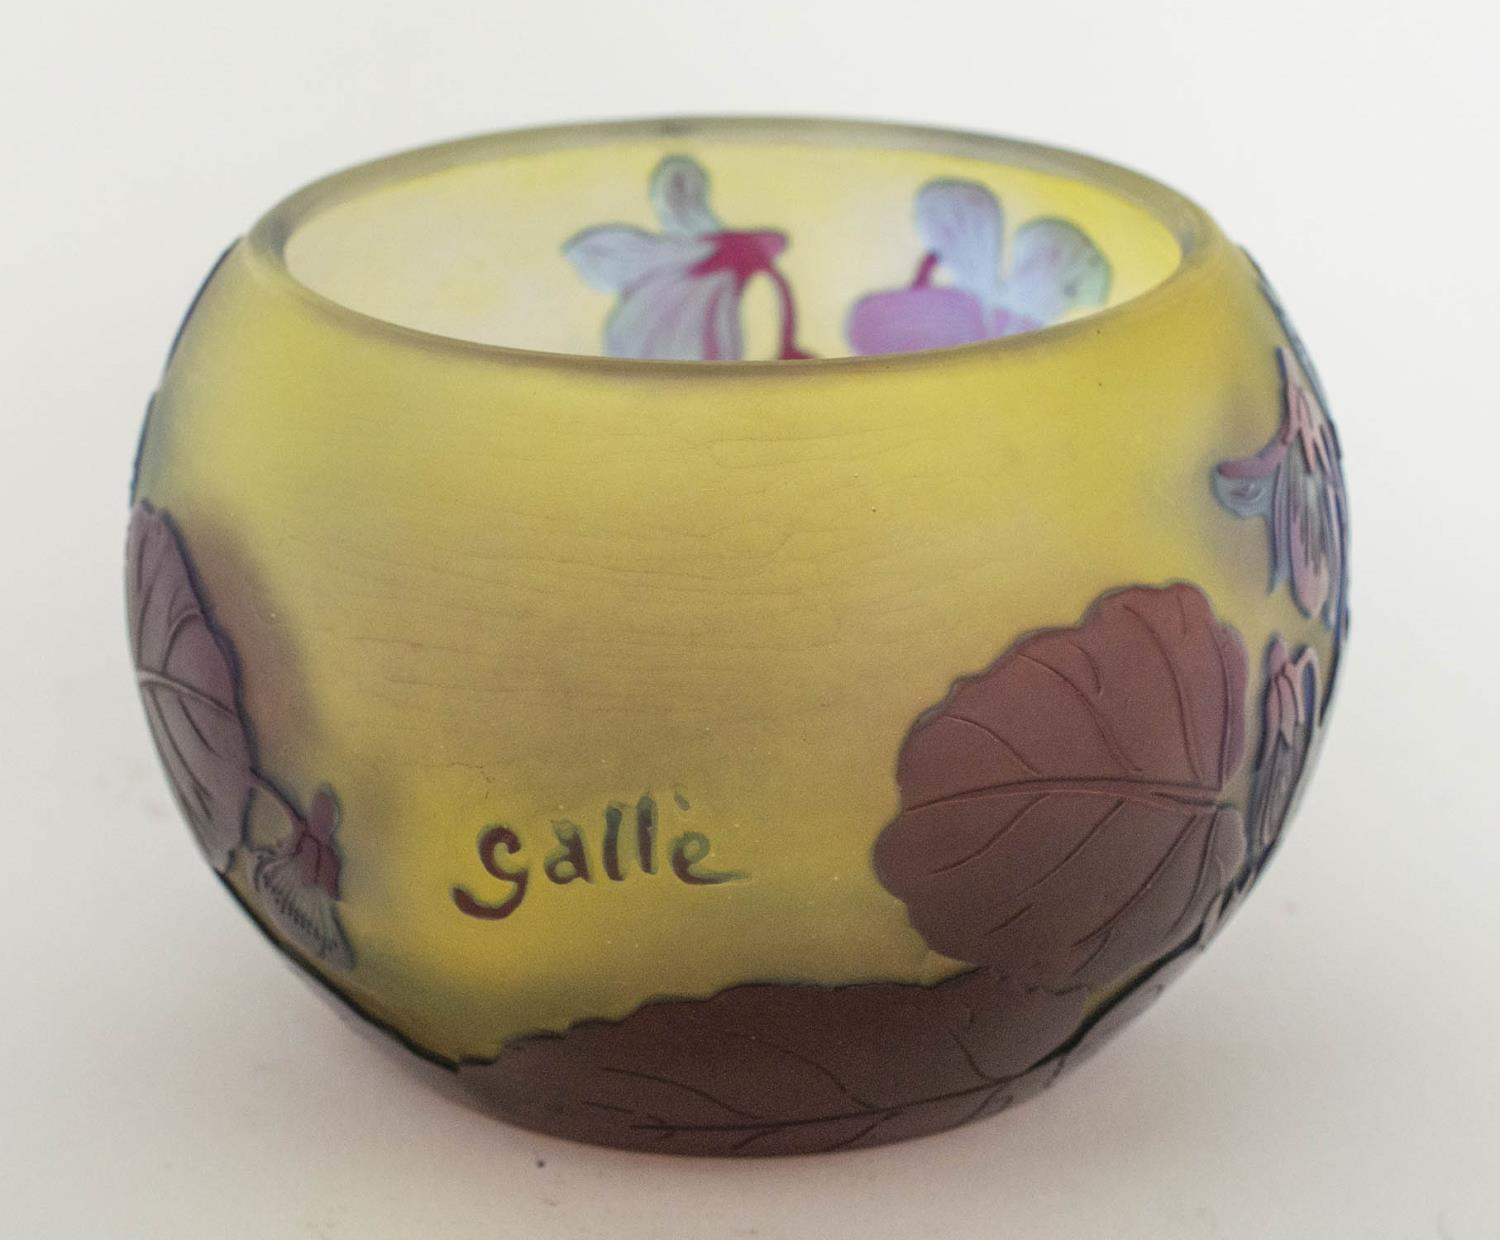 BOWL, Emile Galle Cameo glass, having subtle light blue and amethyst tones with foliate pattern, 8cm - Image 3 of 6